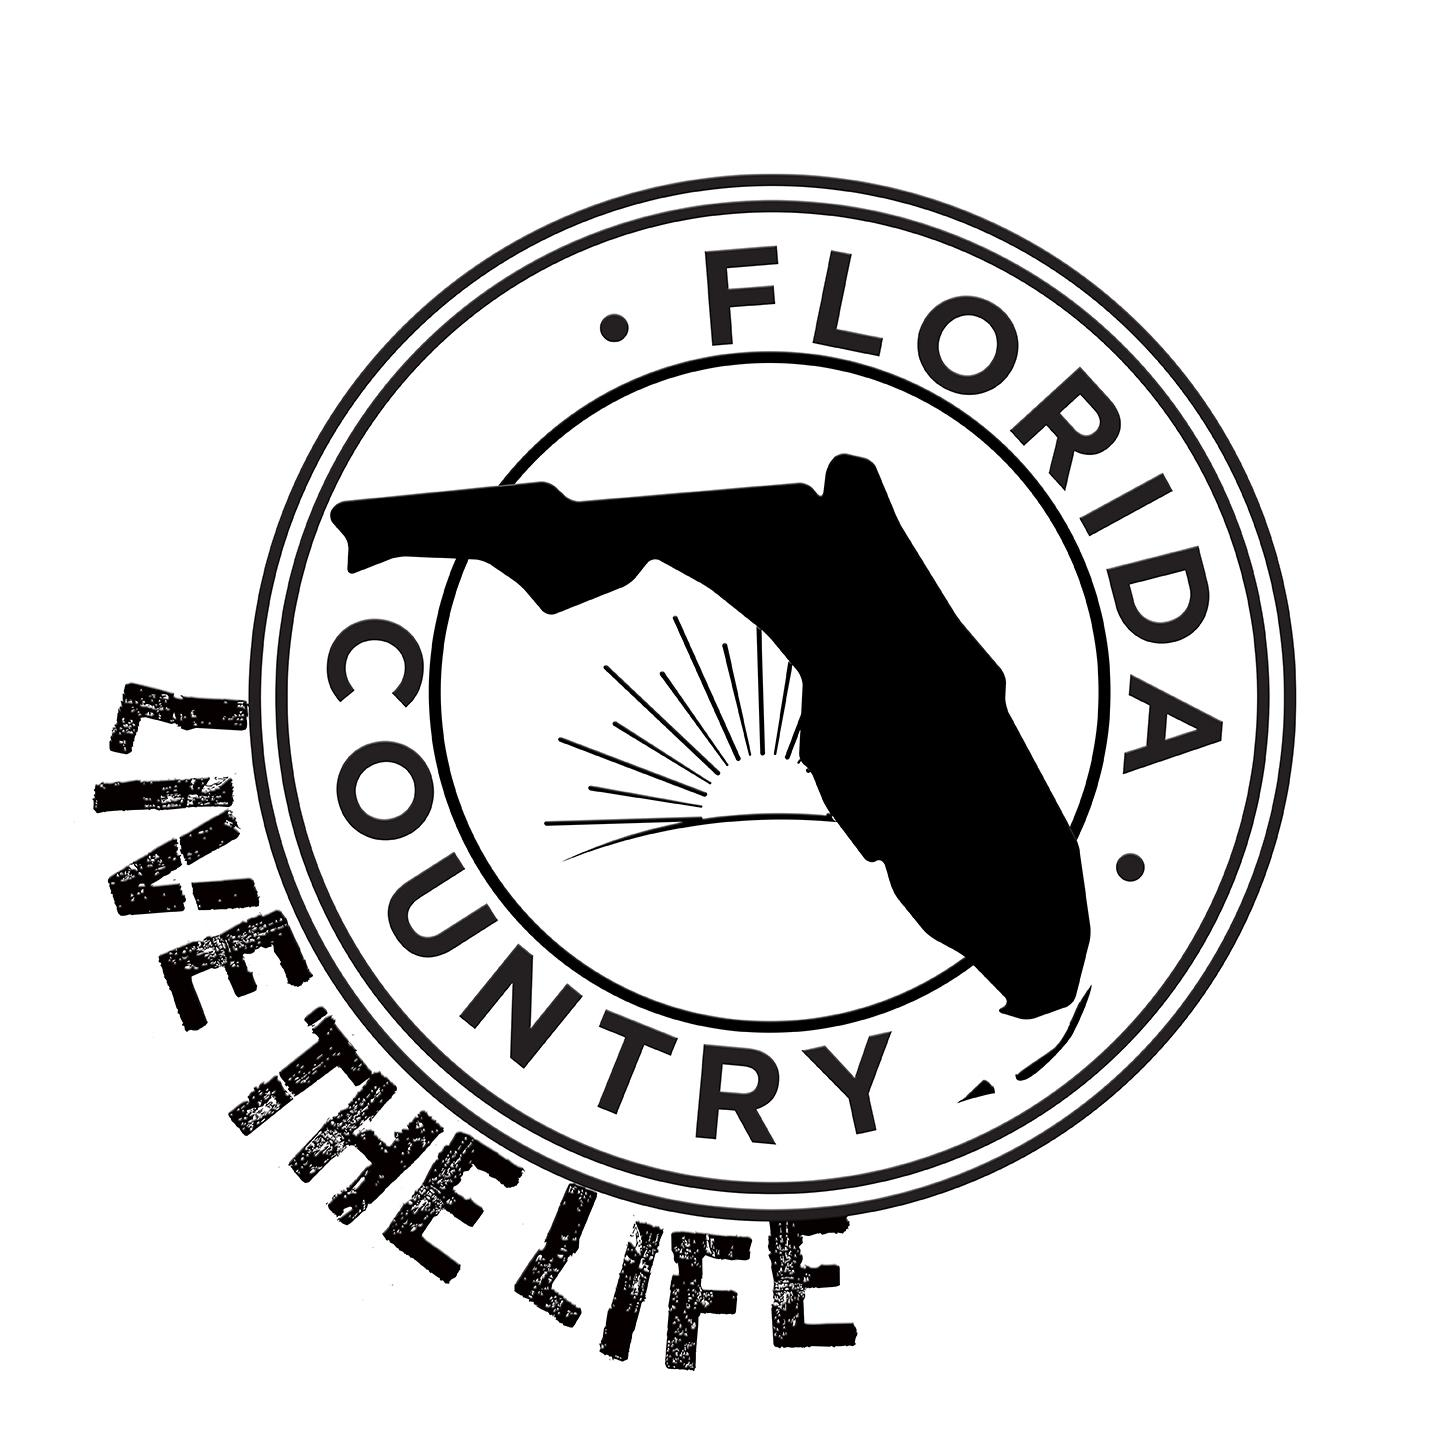 FLORIDA COUNTRY - LIVE THE LIFE